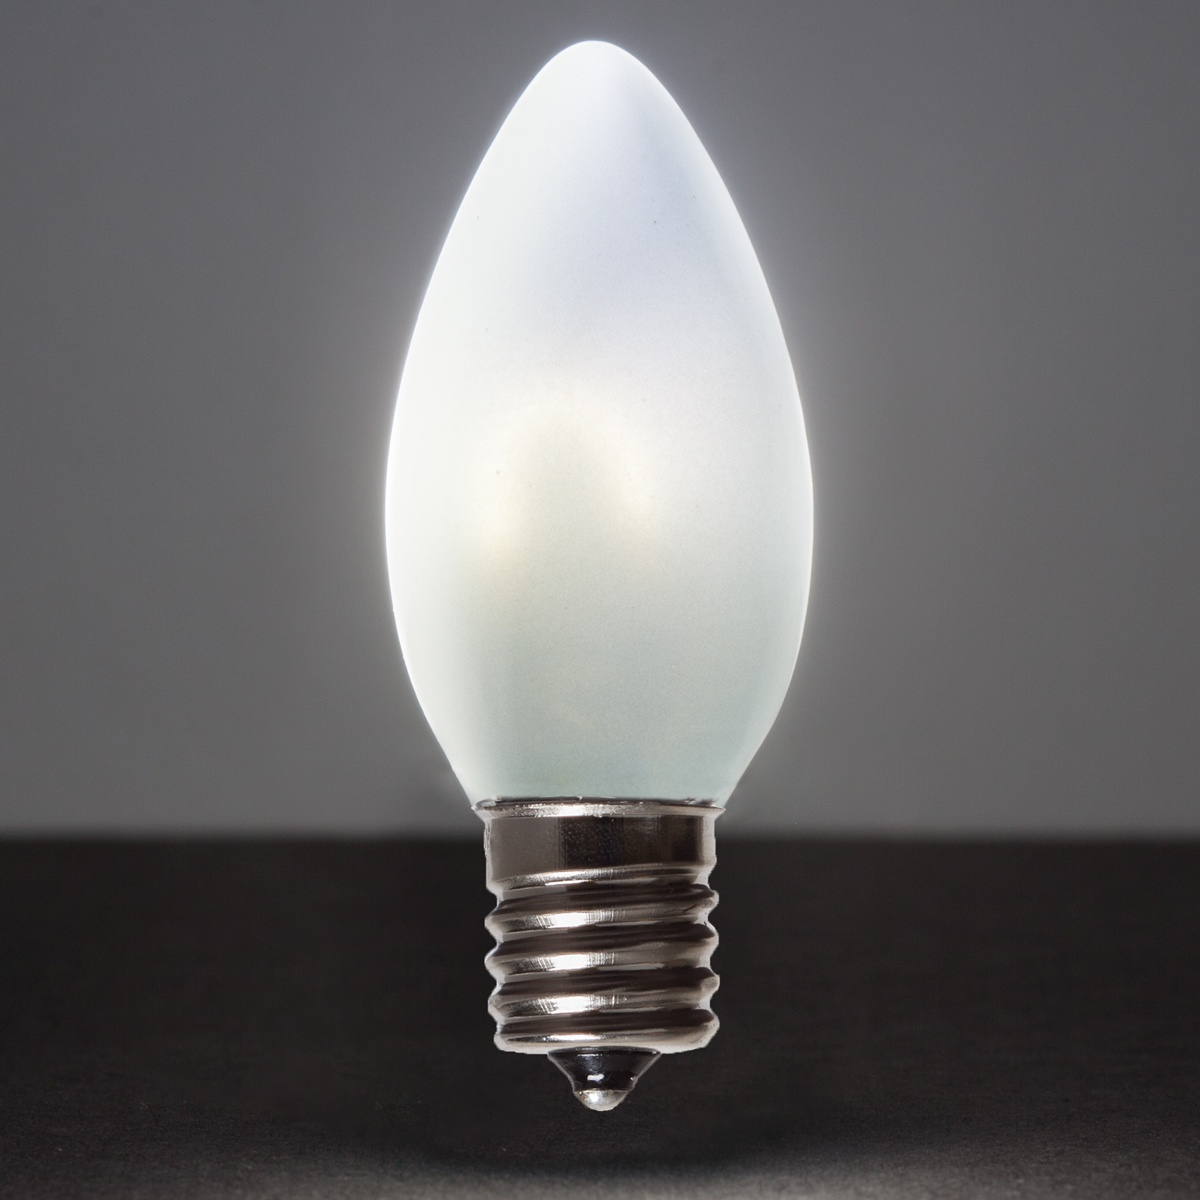 Replacement Mini Led Christmas Light Bulbs